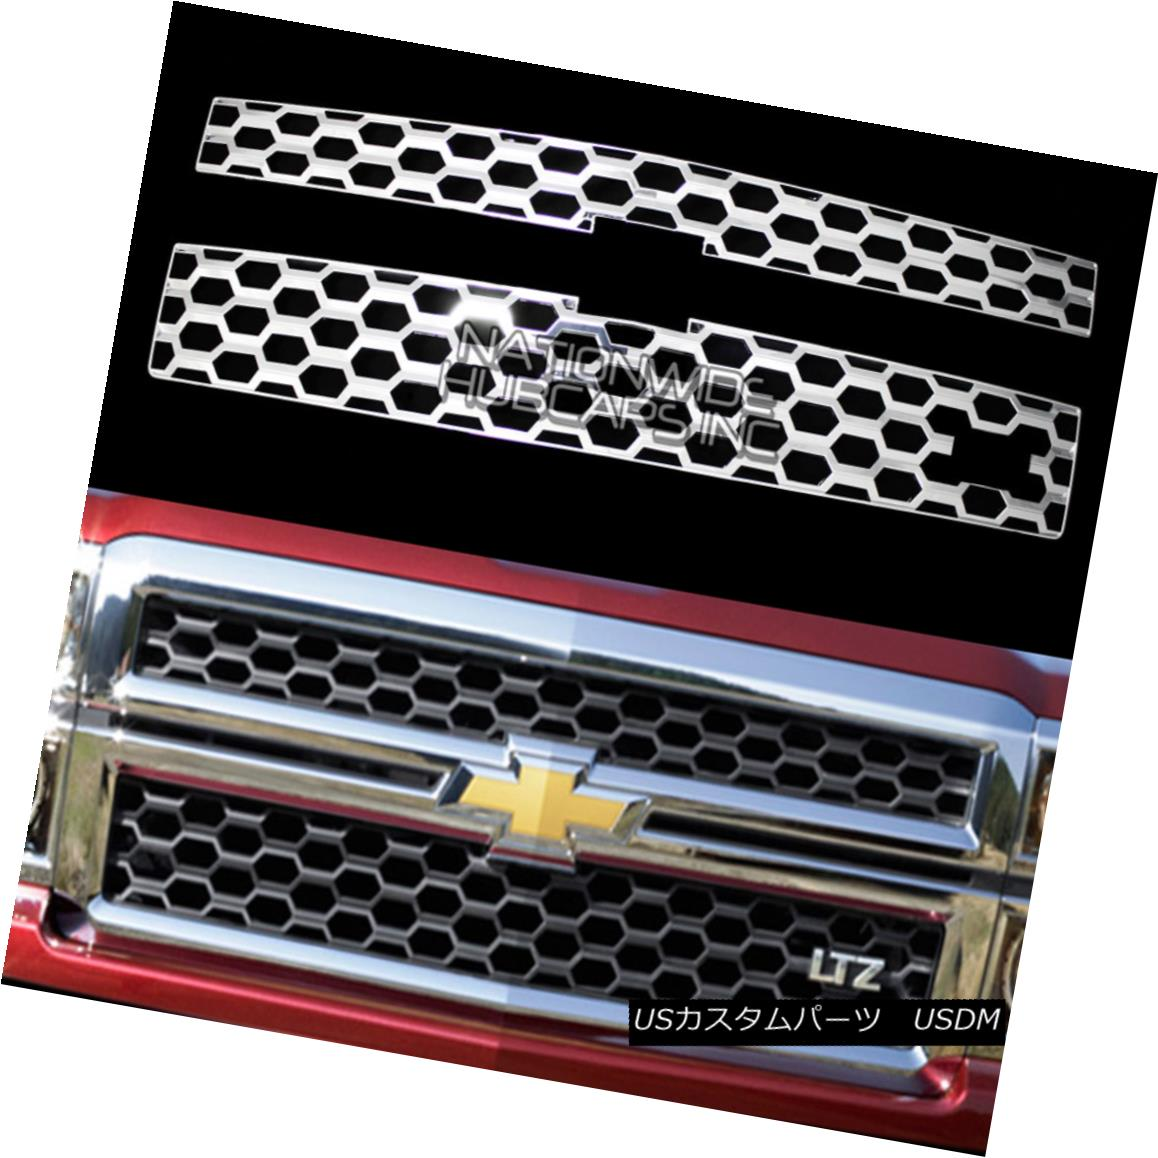 グリル 2014 2015 Silverado 1500 LTZ CHROME Snap On Grille Overlay Grill Inserts Covers 2014 2015 Silverado 1500 LTZ CHROMEスナップオングリルオーバーレイグリルインサートカバー